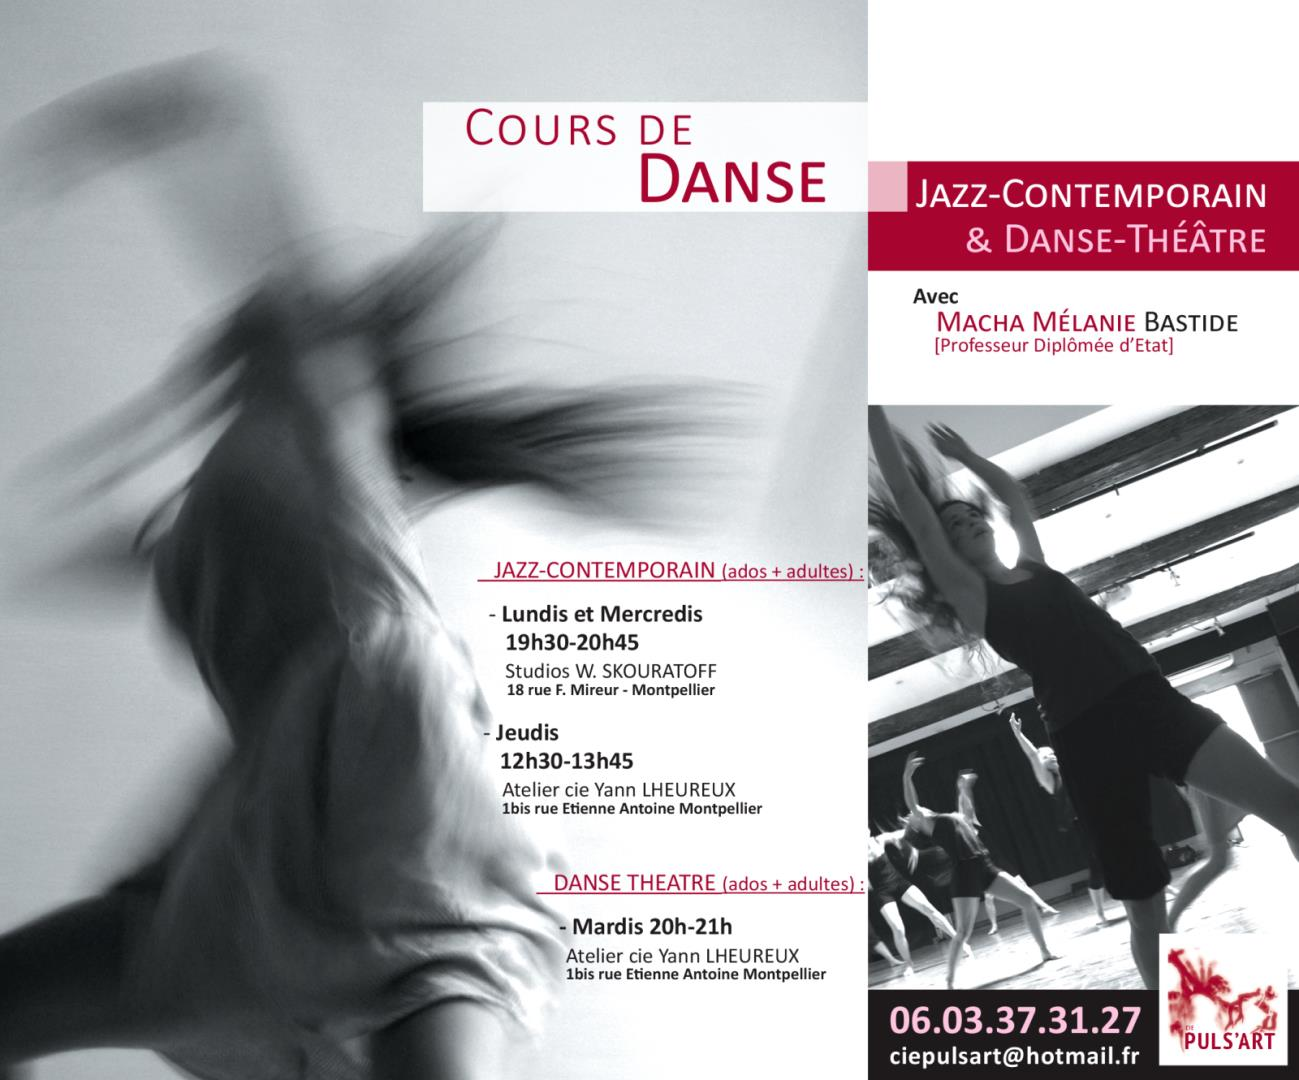 JAZZ-CONTEMPORAIN & DANSE-THEATRE - Cie Puls'Art